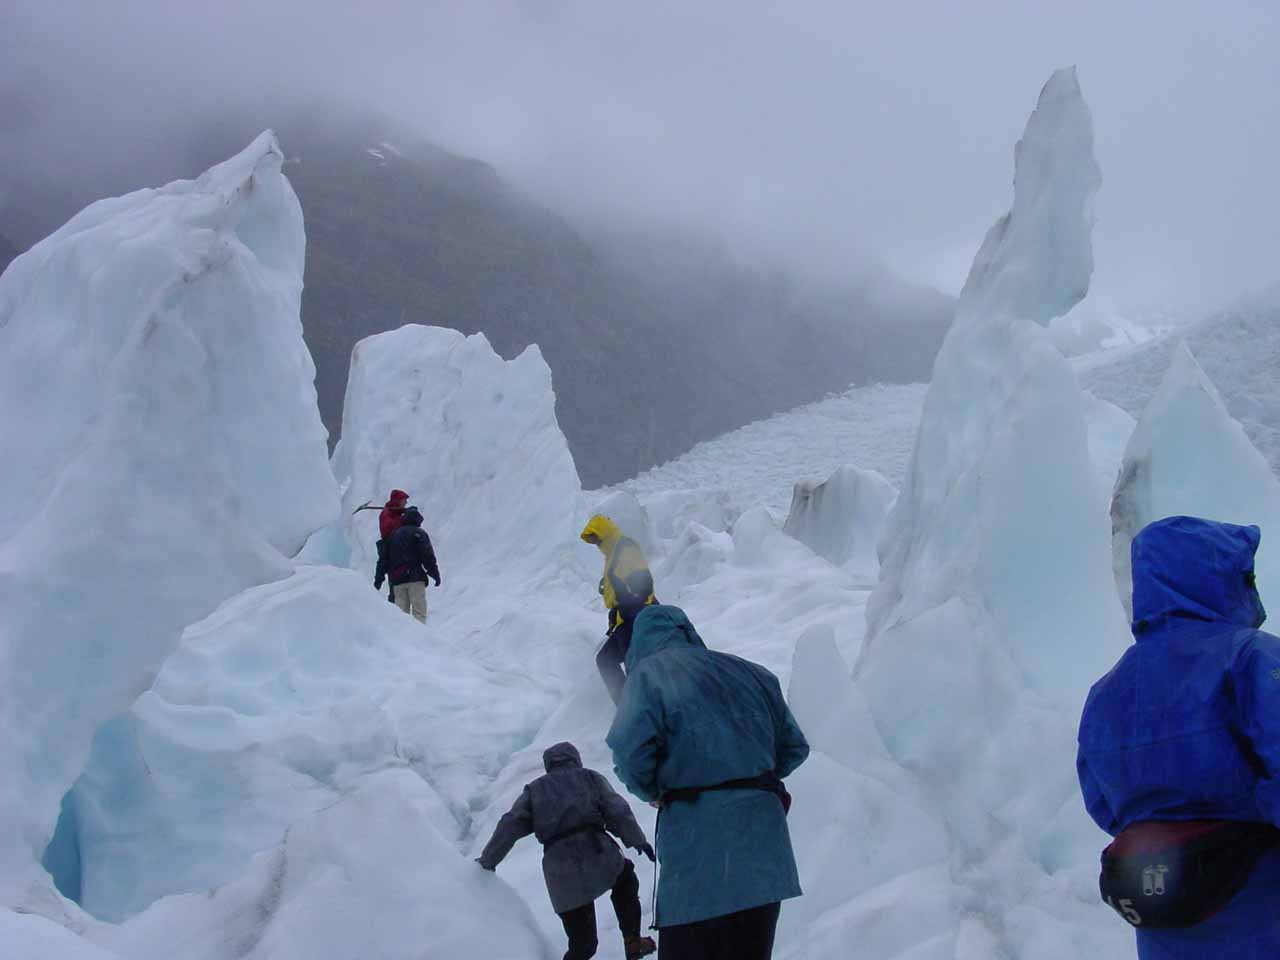 Interesting pinnacle formations that we walked amongst as we tramped on the Franz Josef Glacier